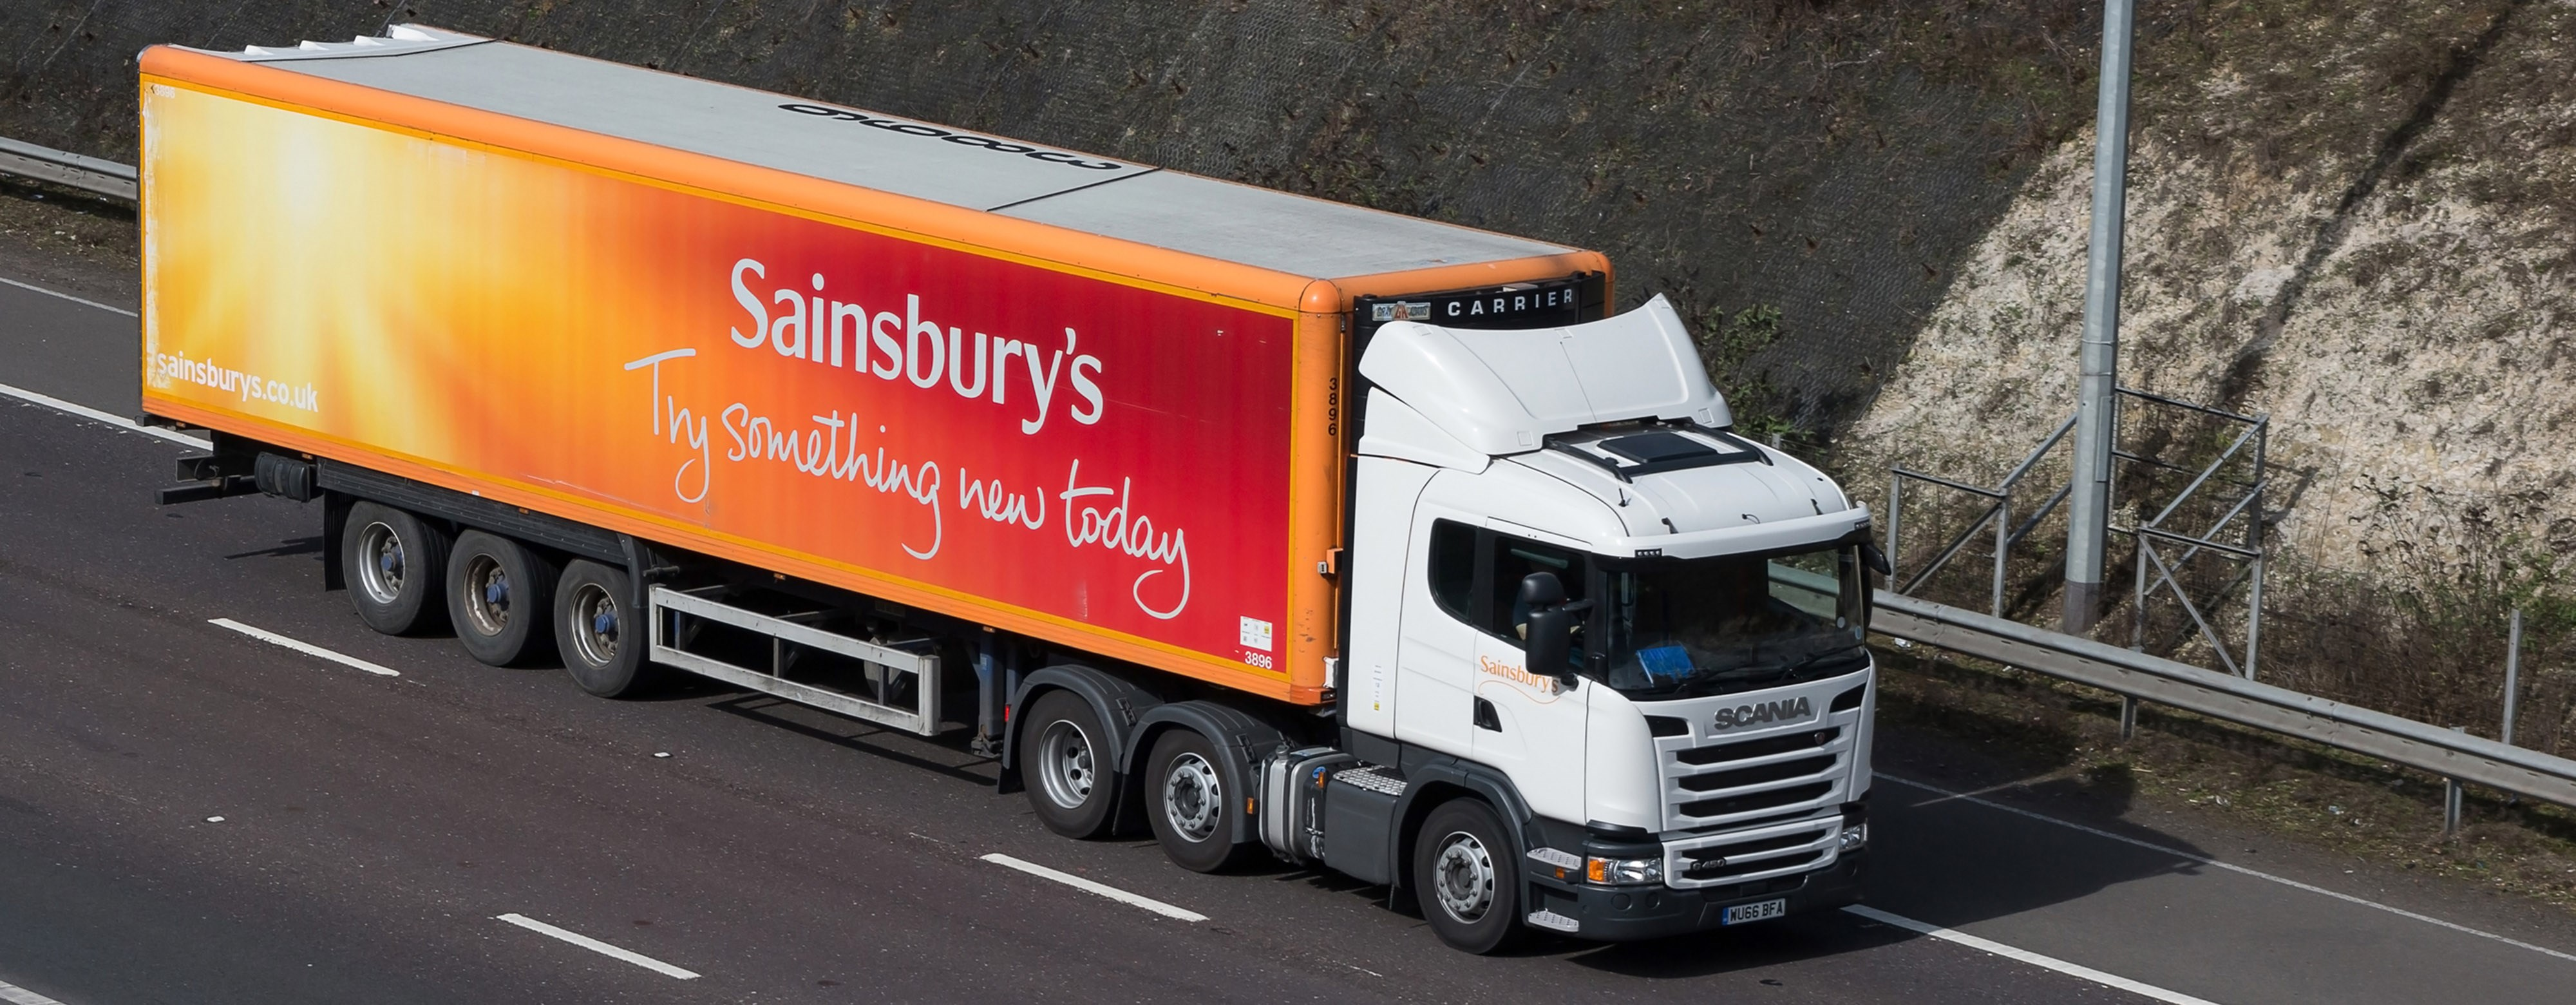 Sainsbury's truck. Photo: Gorgios/Dreamstime